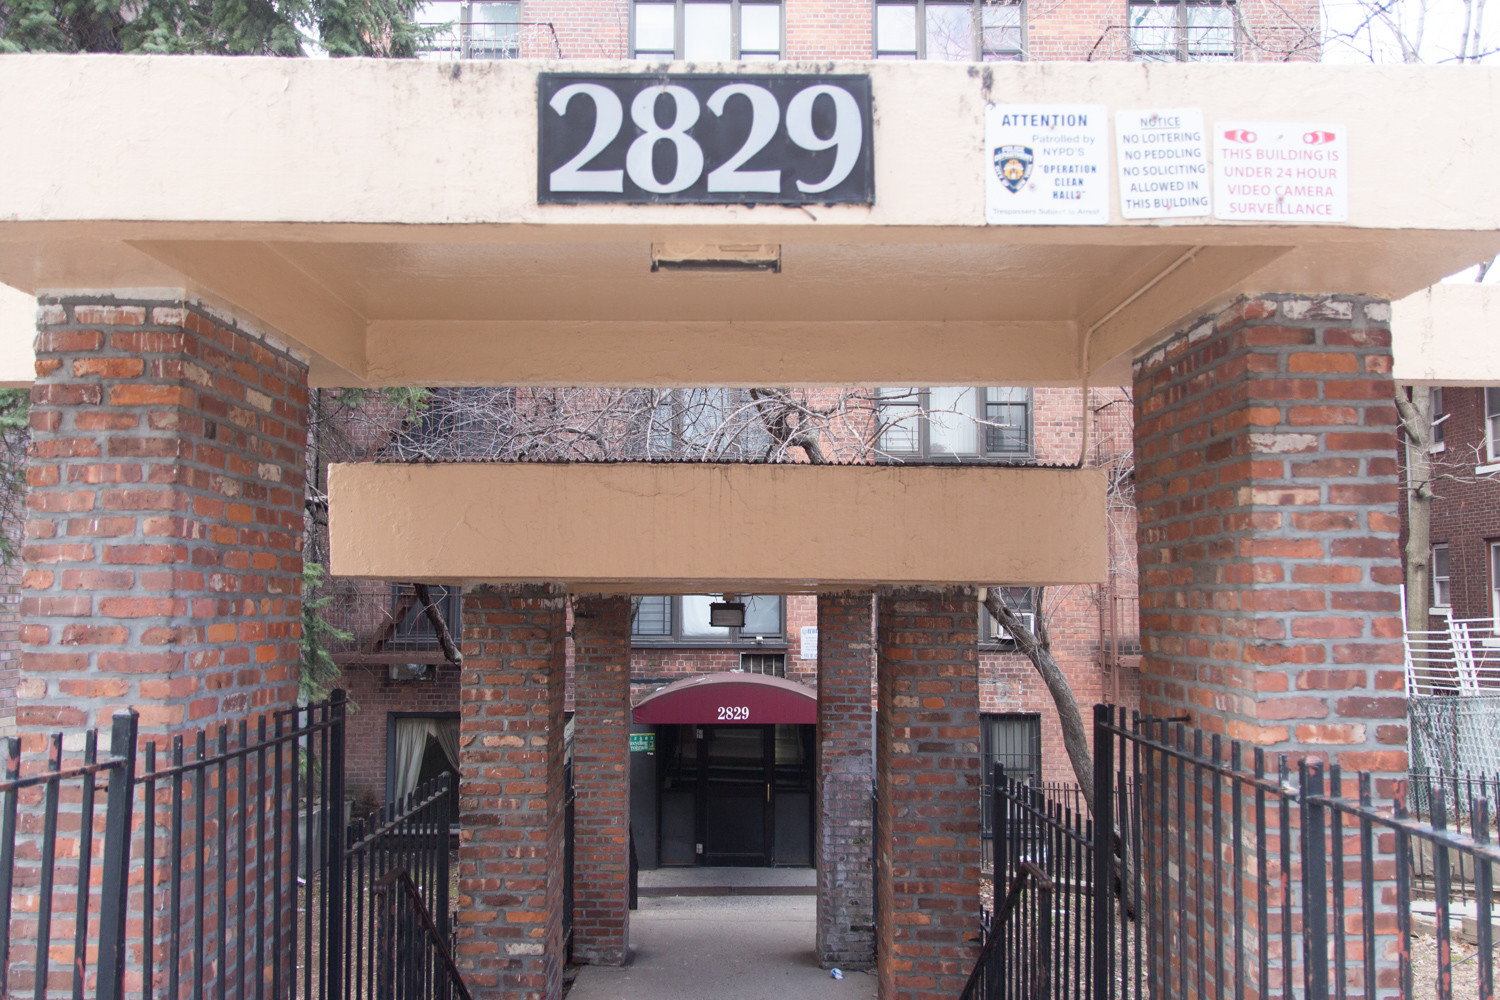 While initially a sprawling garden district, recent development in Kingsbridge and Marble Hill has been of the higher density variety, including apartment buildings such as this one at 2829 Sedgwick Ave. In a move to preserve the remaining character of the community, Community Board 8 wants the area downzoned.